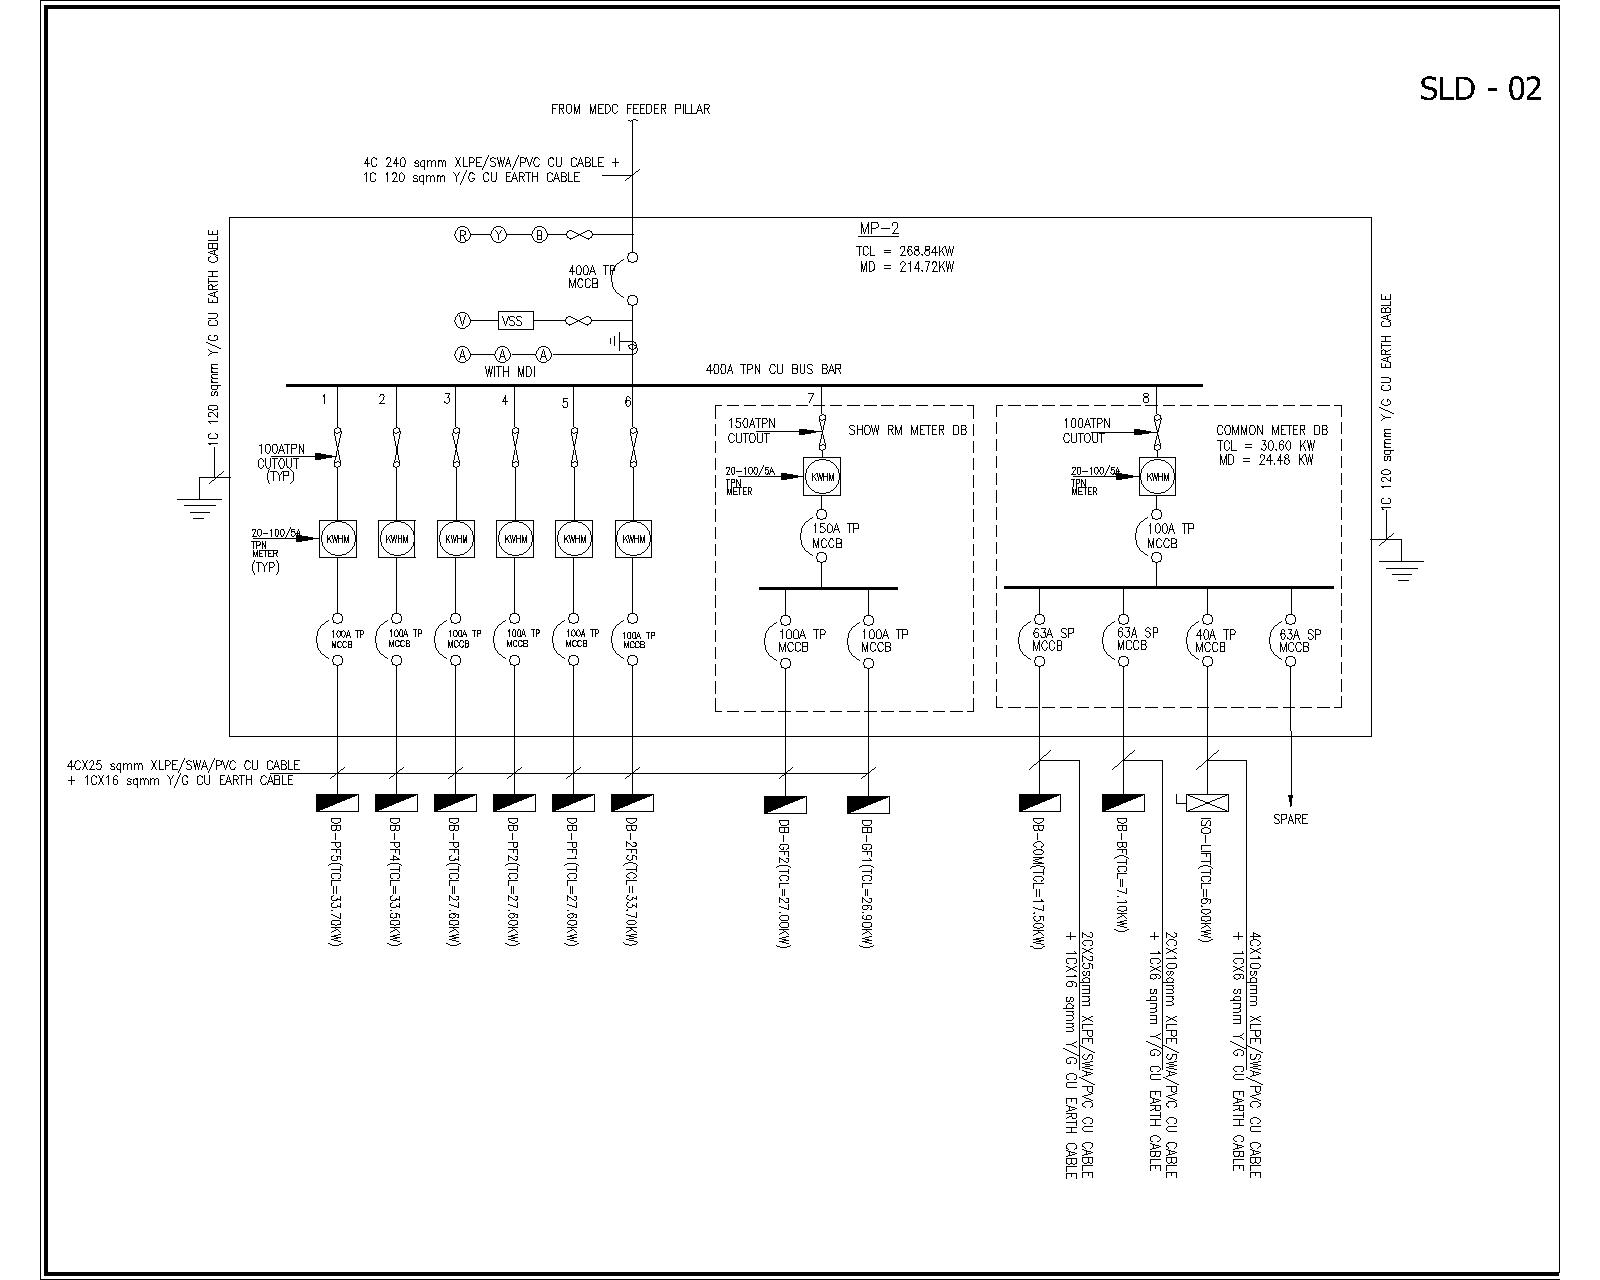 Design and Drafting Electrical Panel and Distribution Schematic Drawing in Auto CAD